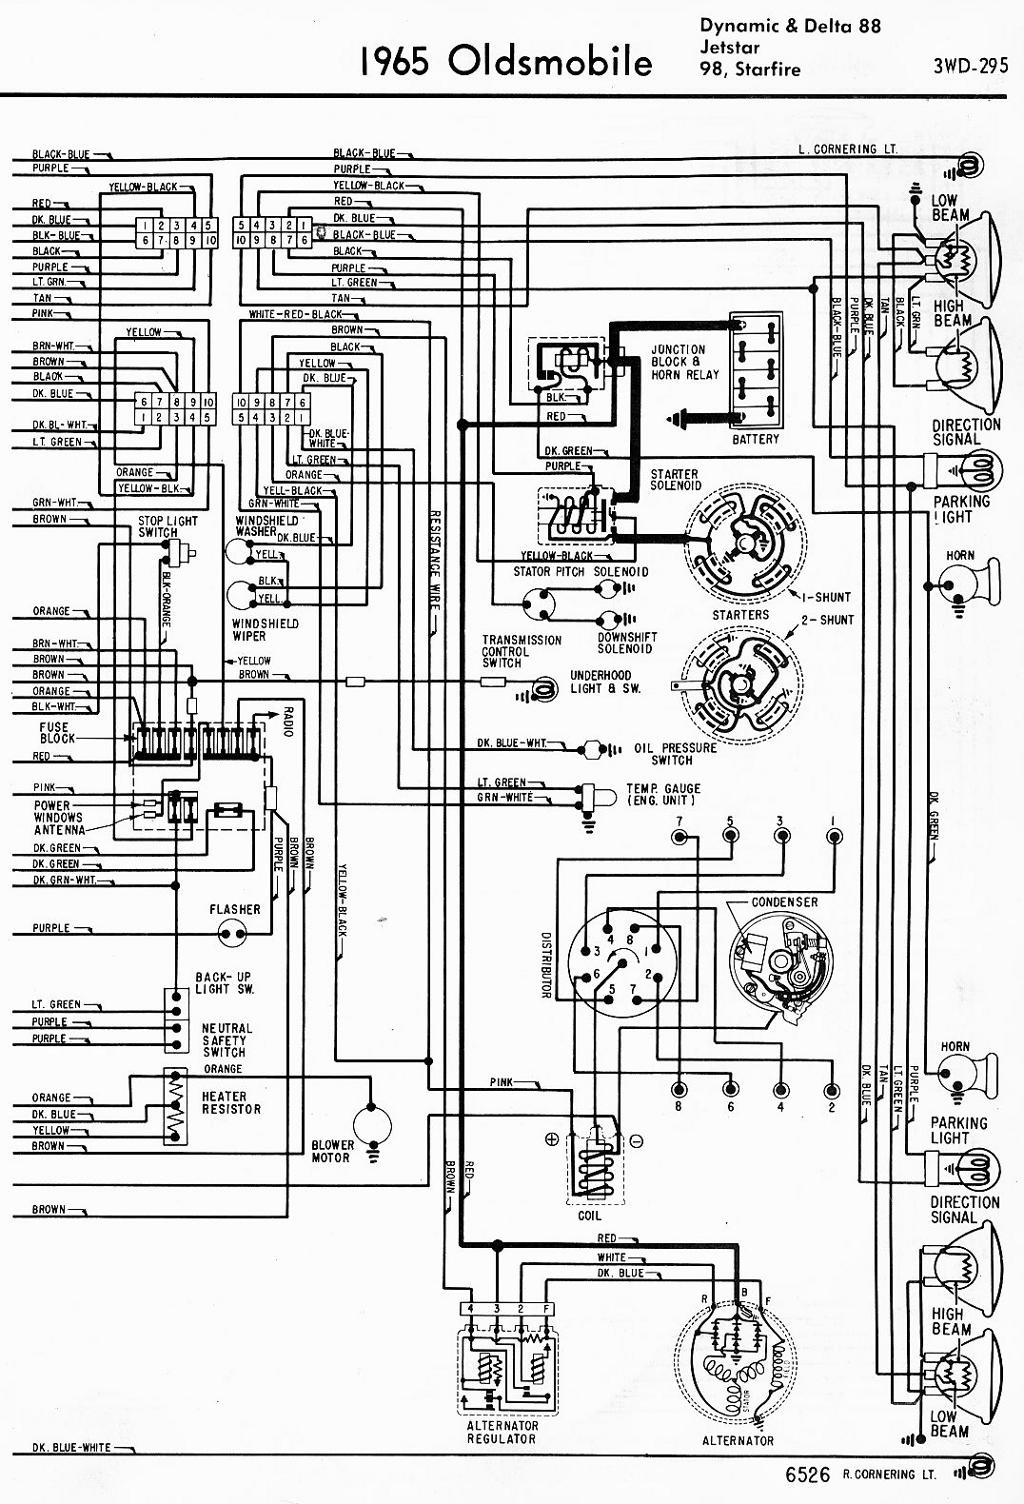 1994 Olds 98 Wiring Diagram Relay Base Wiring Schematic Begeboy Wiring Diagram Source